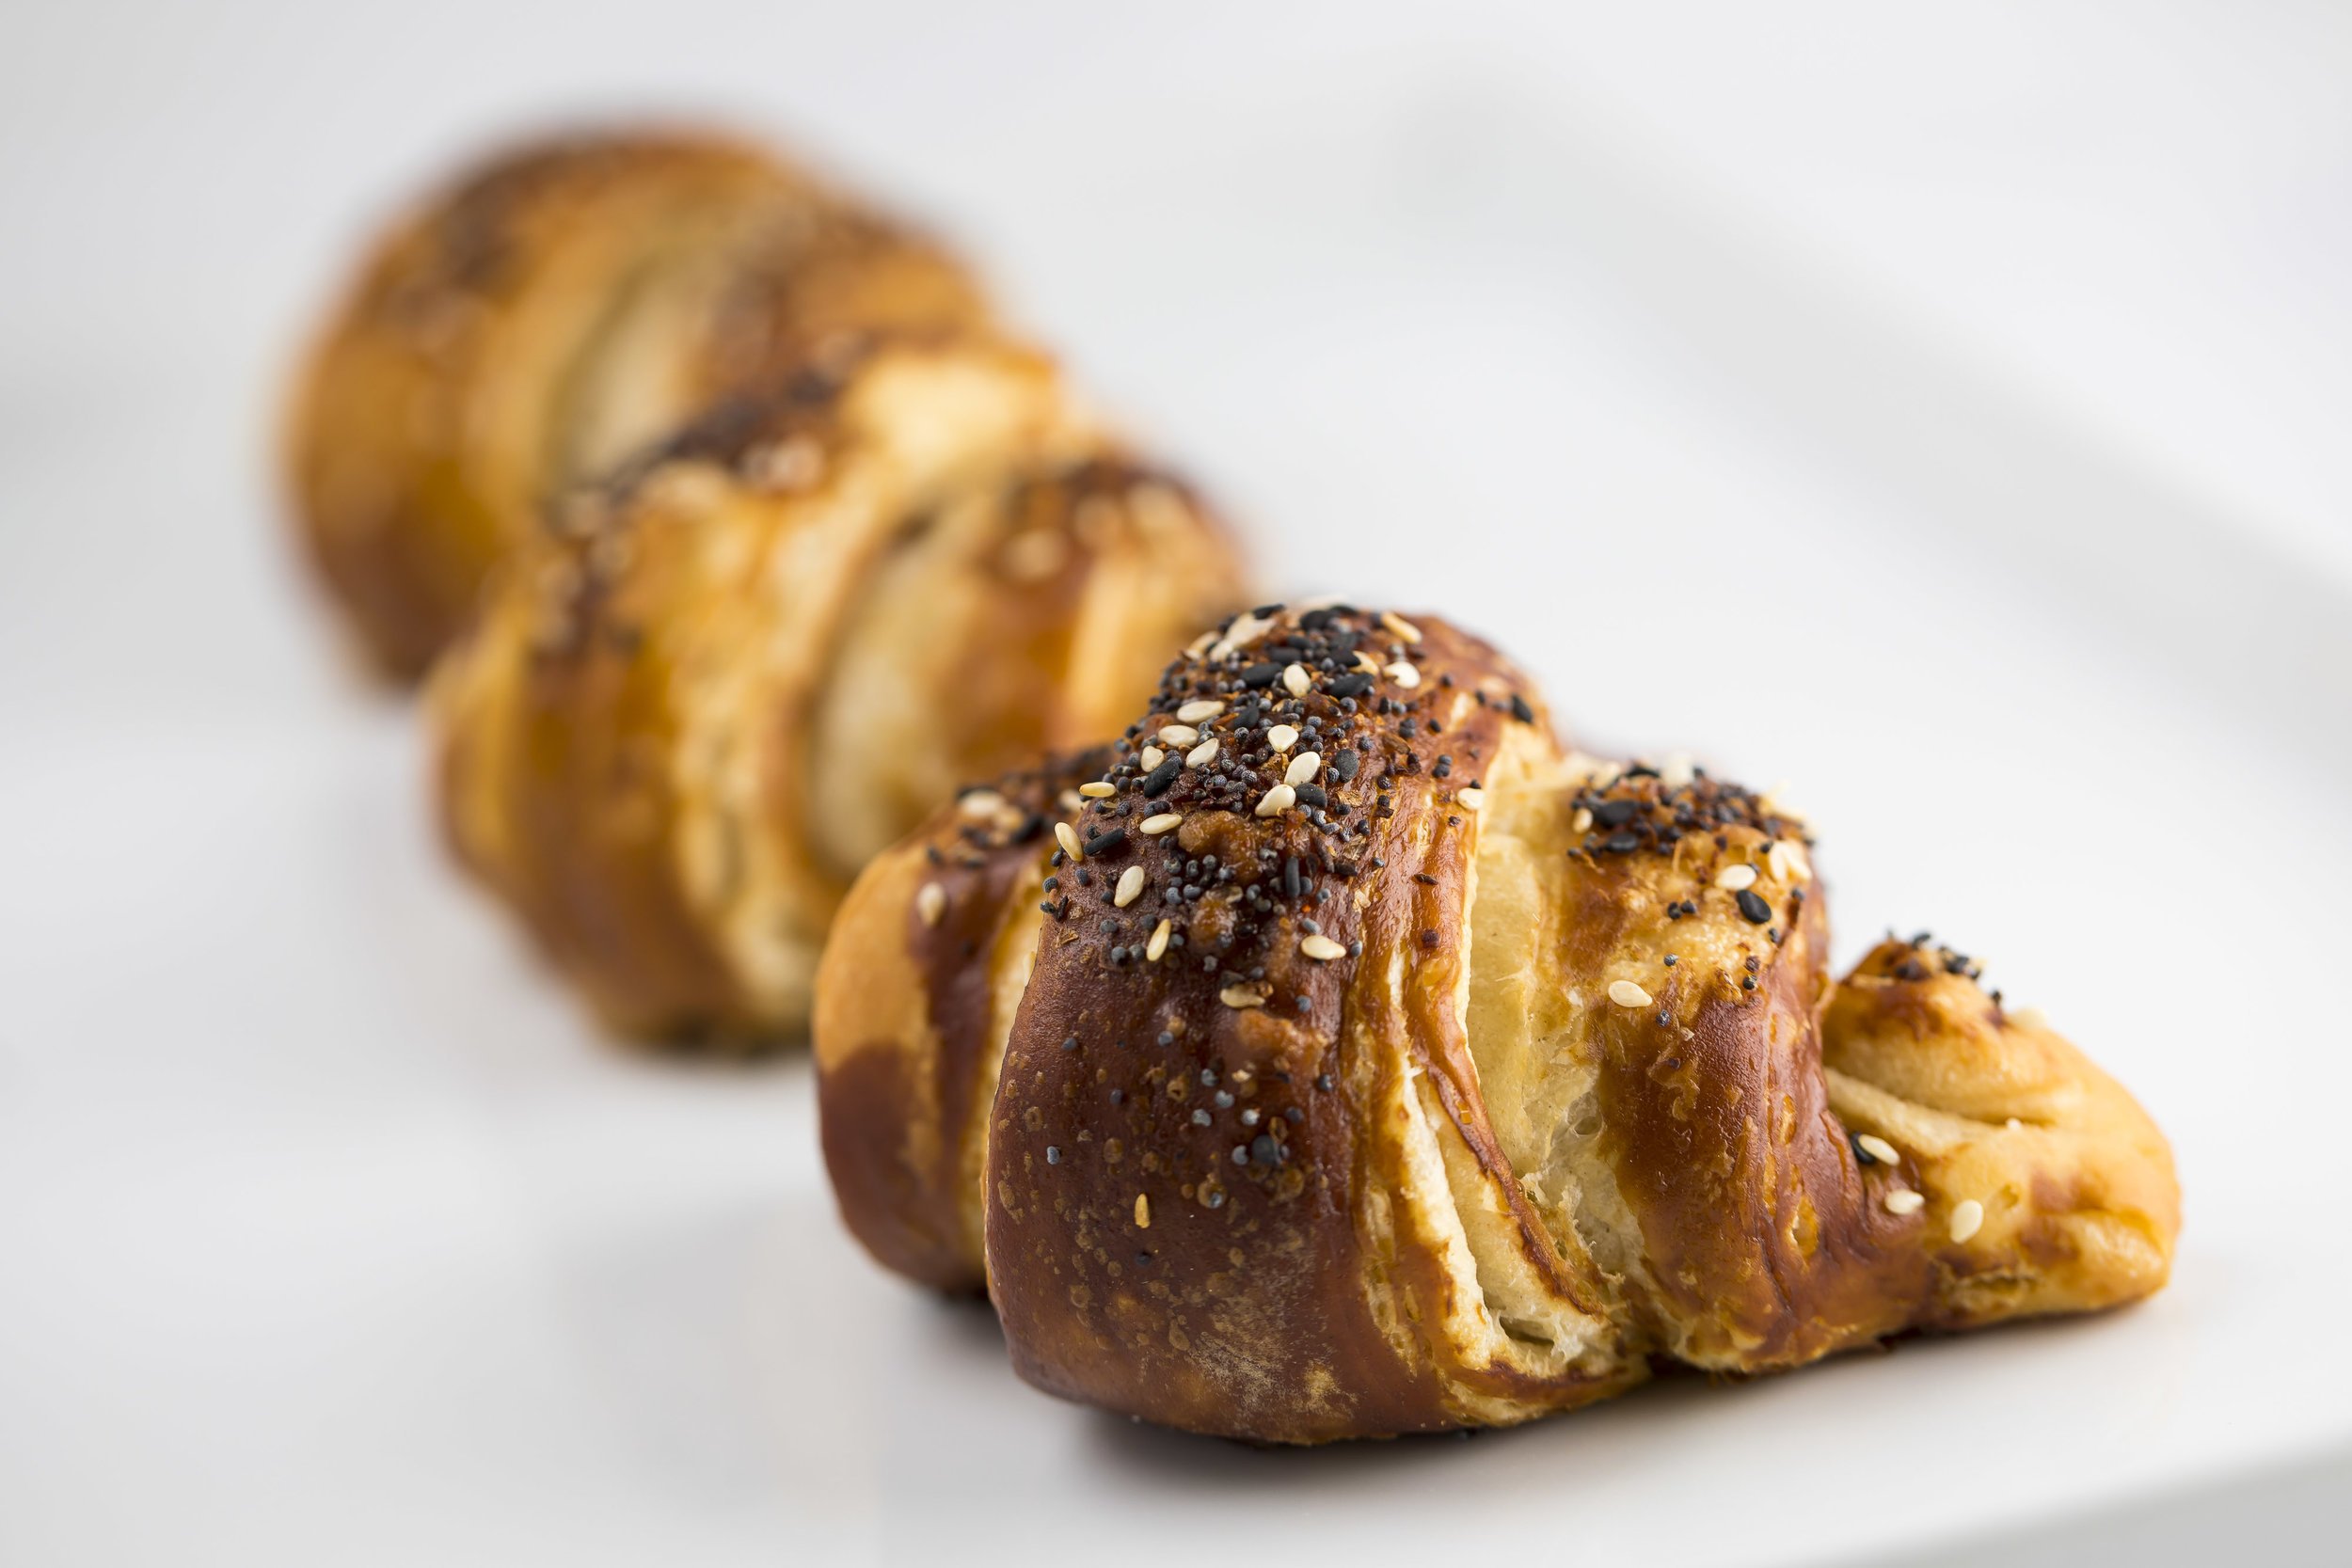 Cheesy Pretzel Croissant and Everything Topping_Fall 18 GP Tasting_BH2.JPG